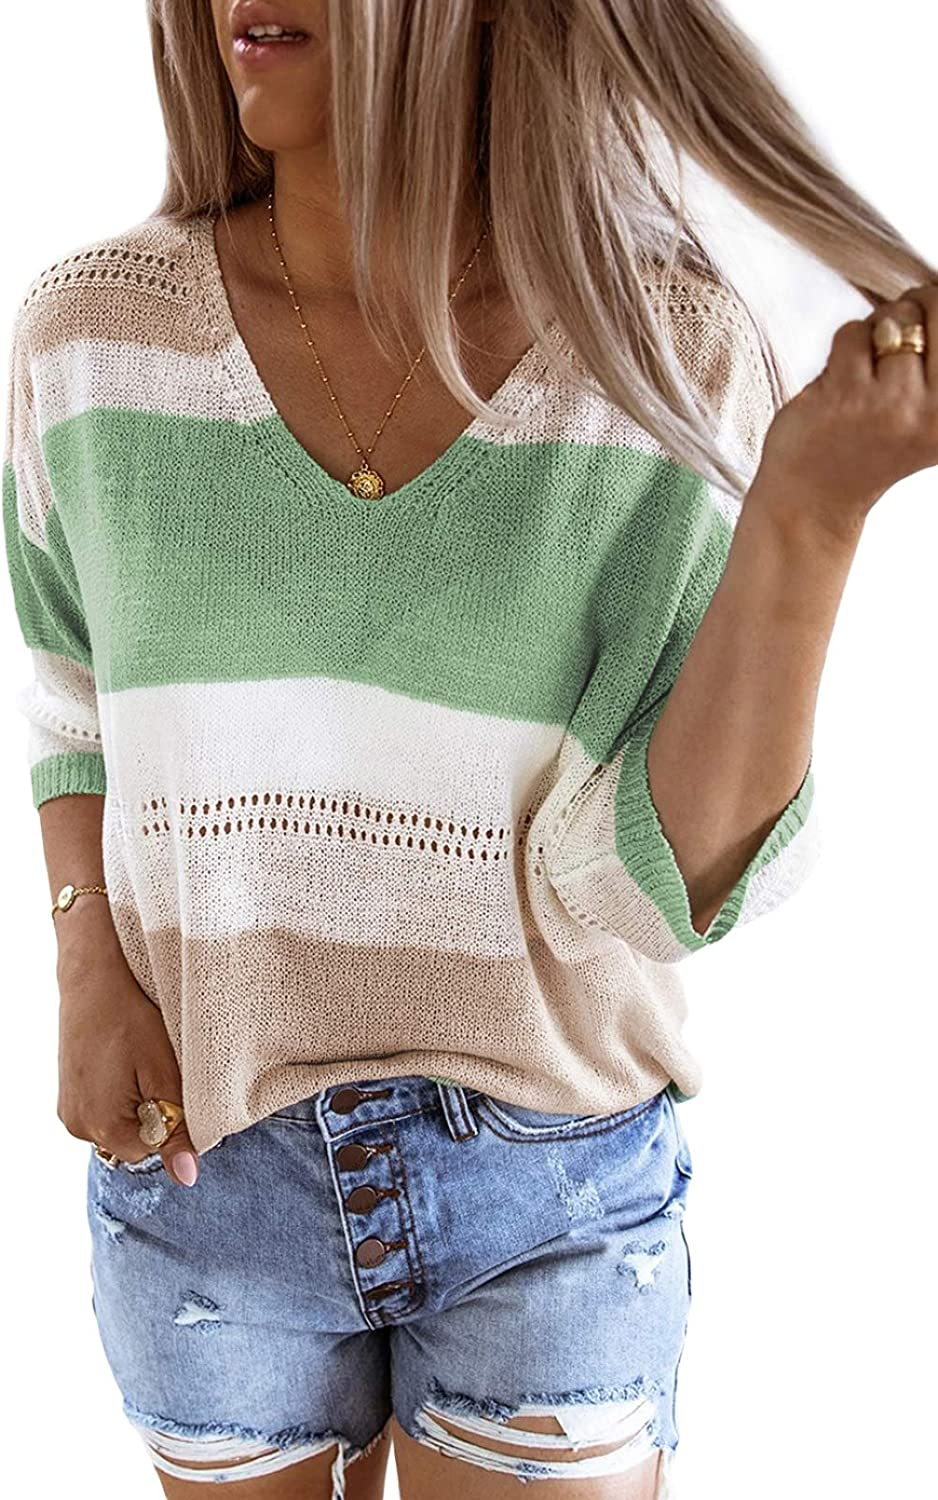 Zecilbo Women's Striped Color Block 3/4 Sleeve Sweaters Casual Loose Fit Knit Tops